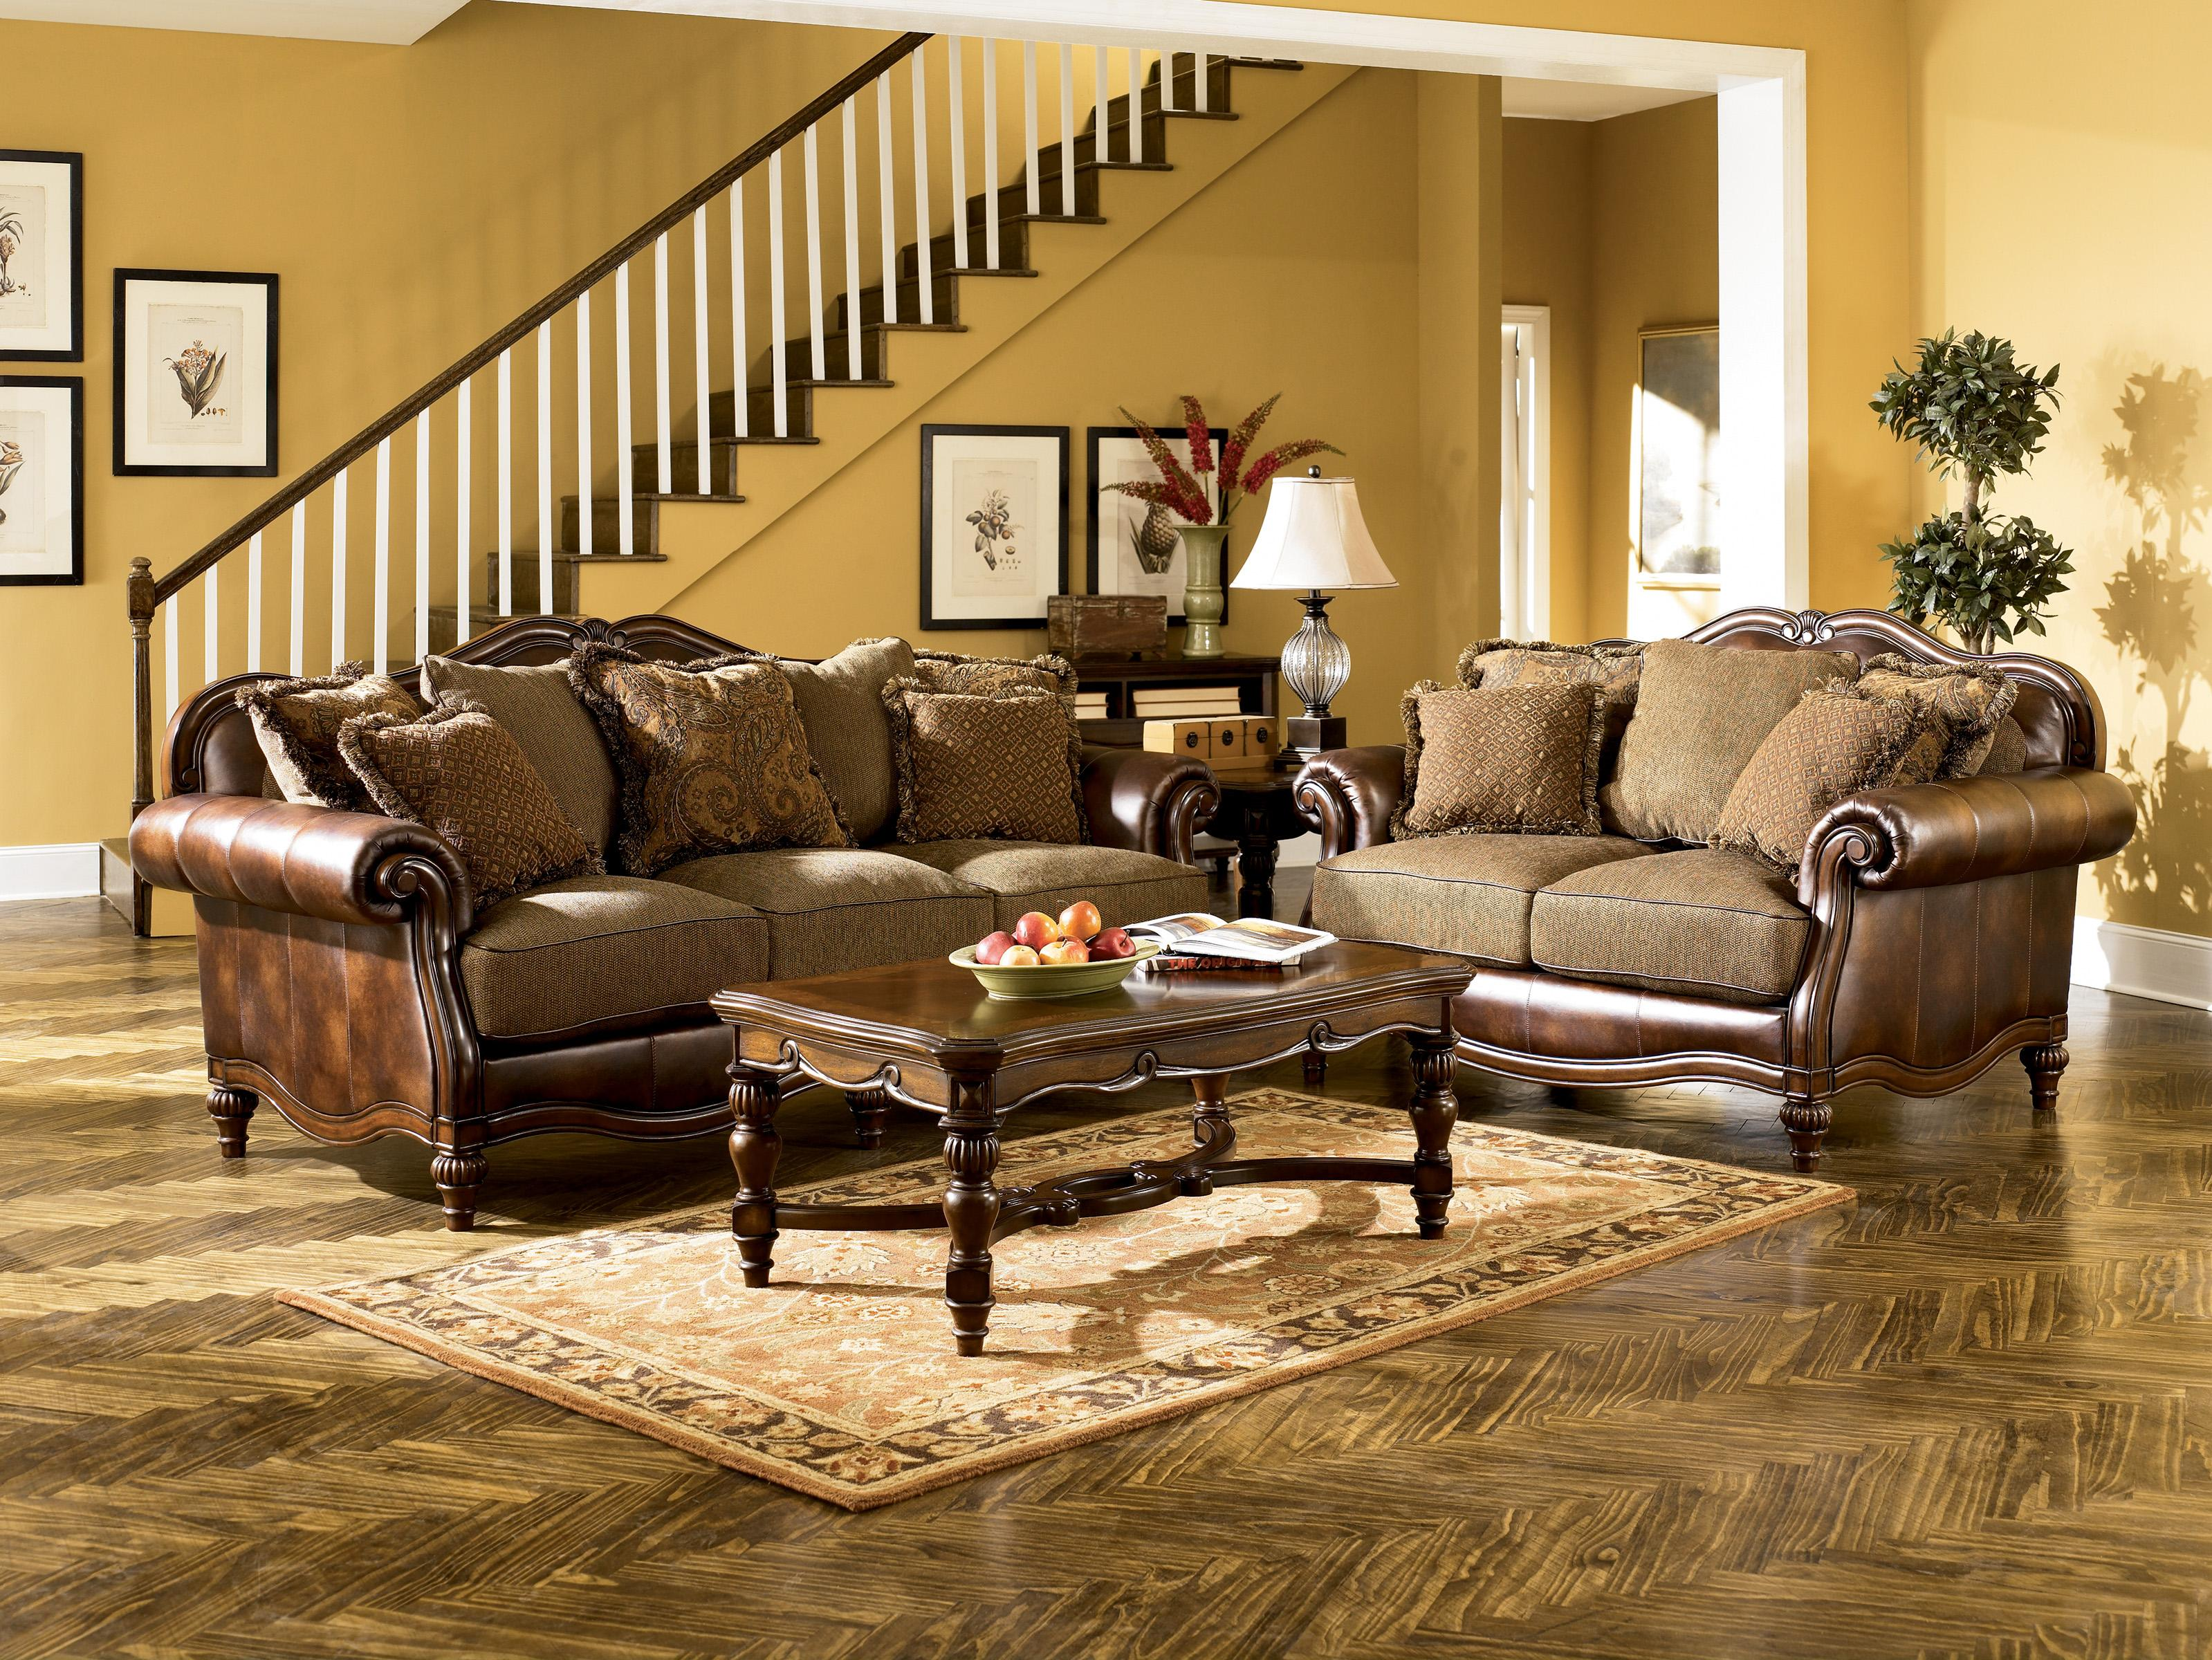 Signature Design by Ashley Claremore - Antique Stationary Living Room Group - Item Number: 84303 Living Room Group 1